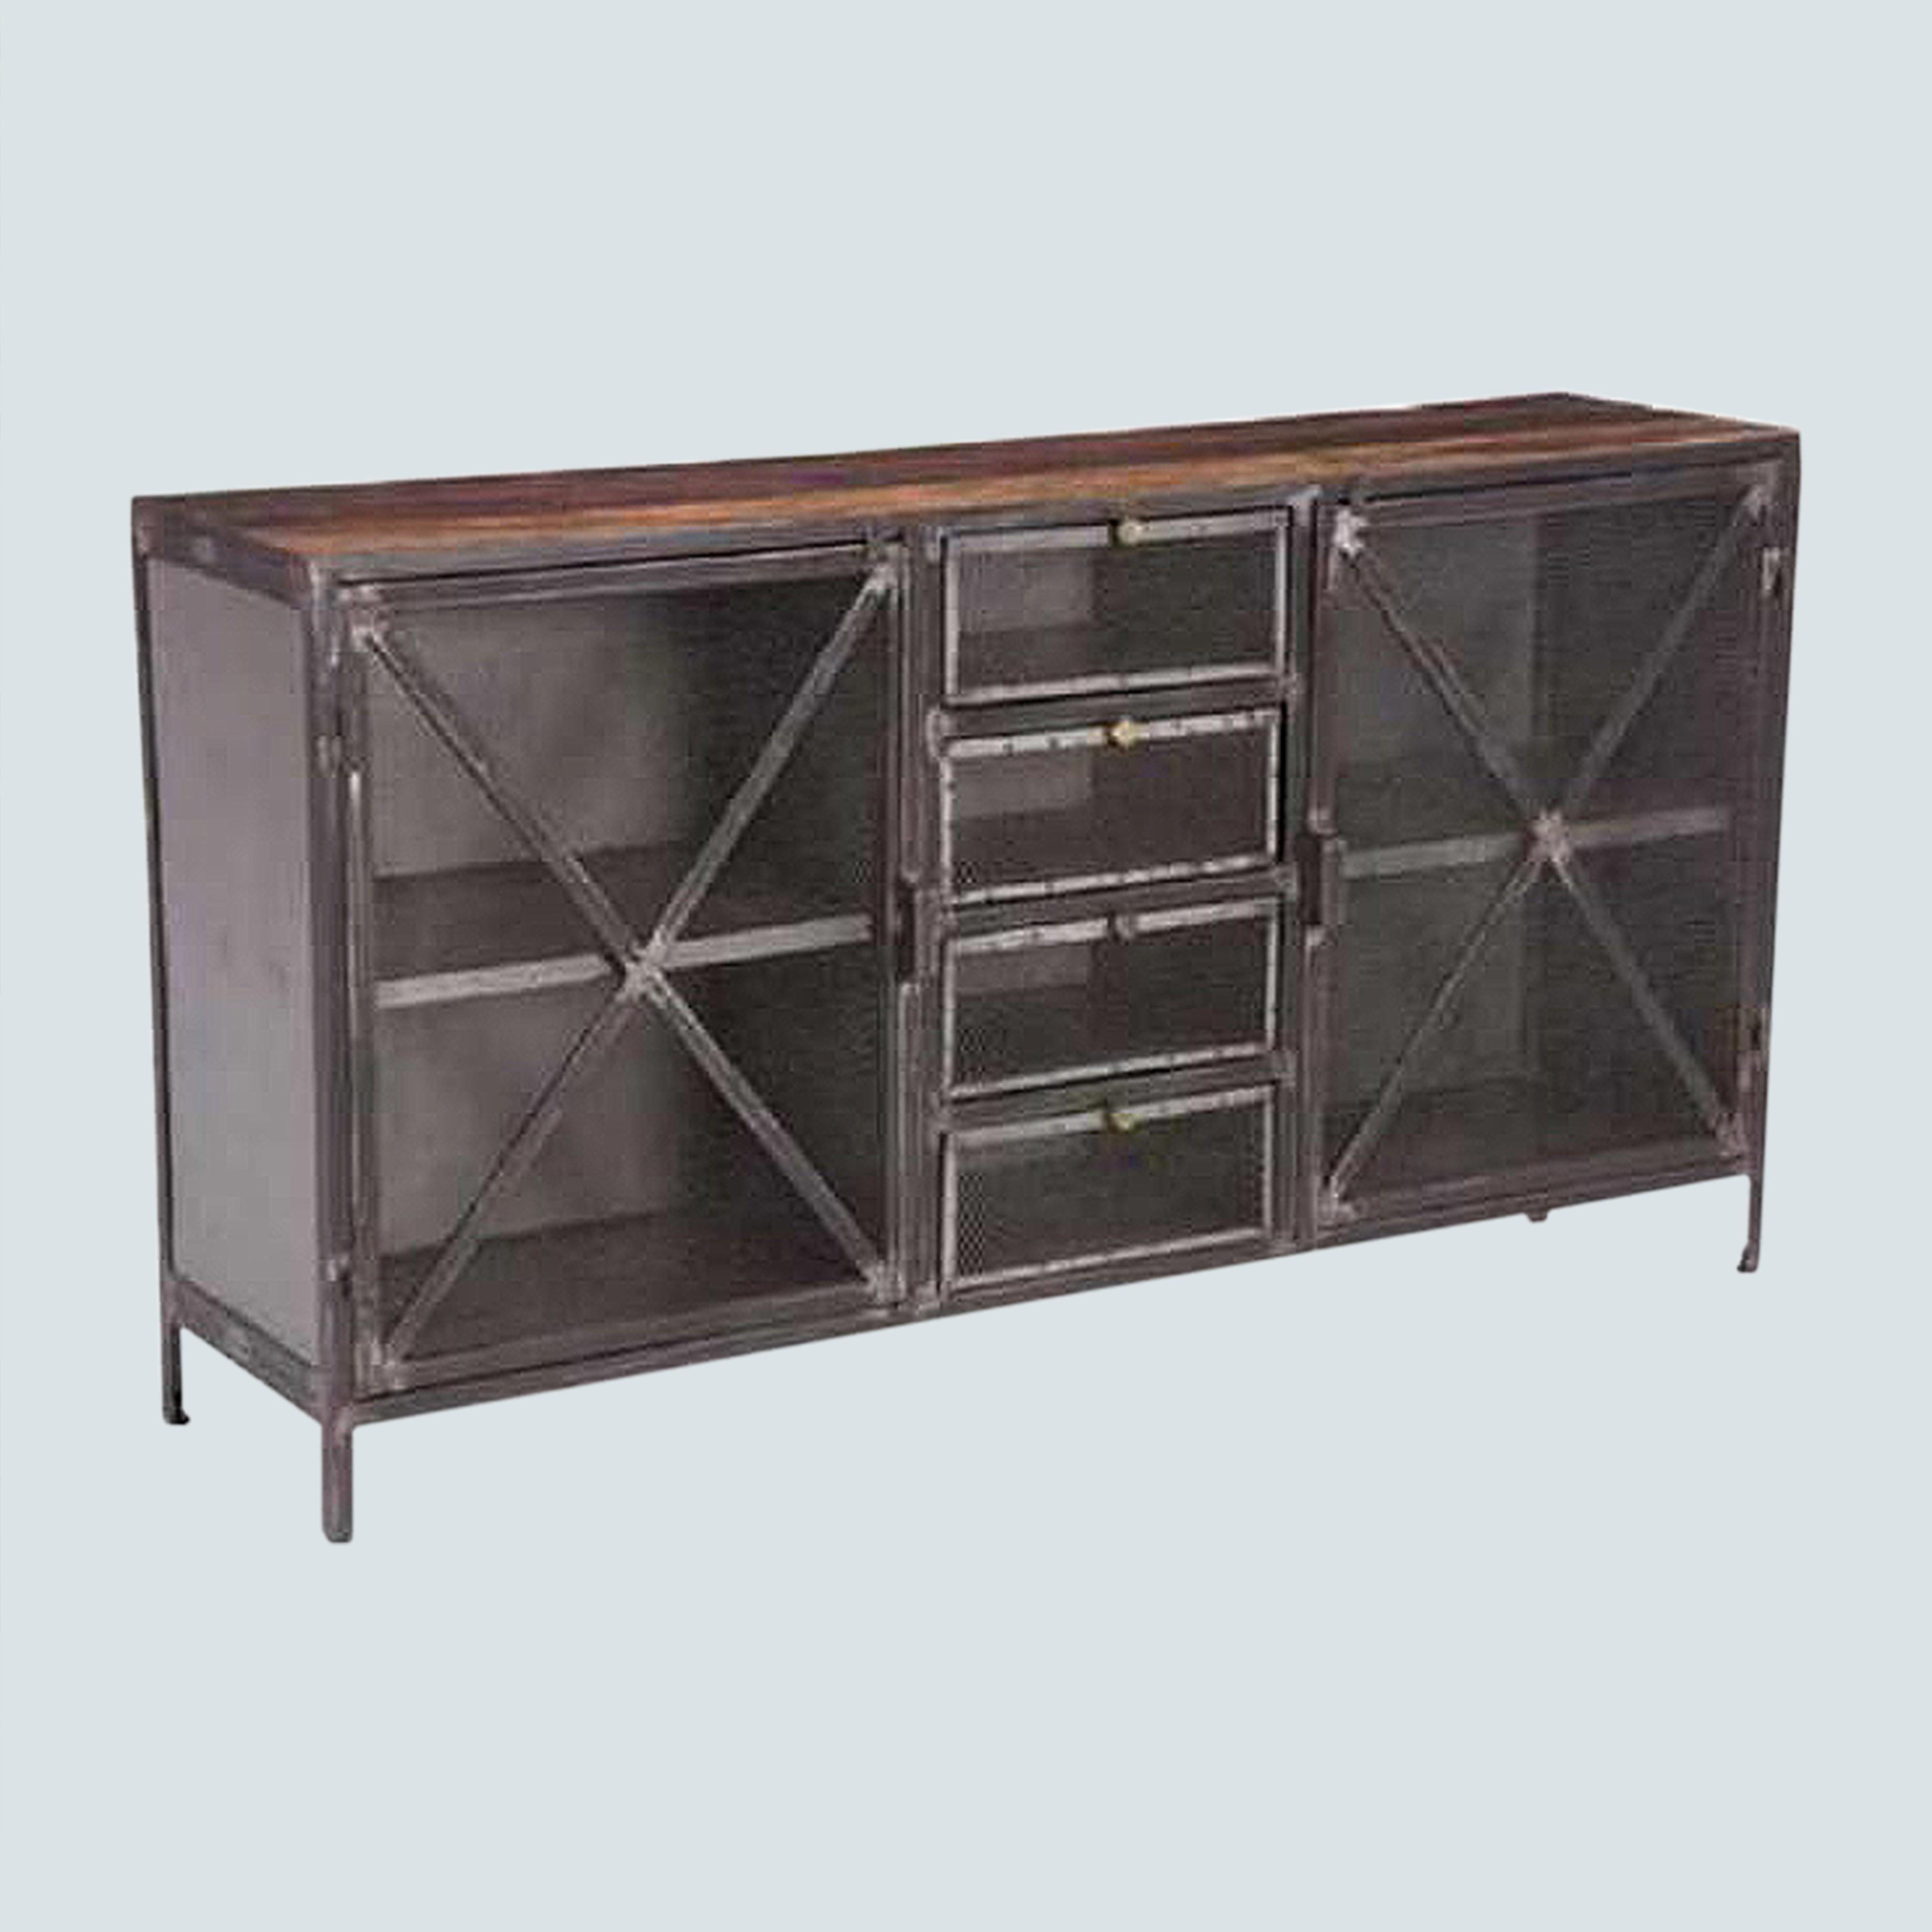 Industrial, Reclaimed wood Entertainment Center, TV Stand,TV Console,  Sideboard Credenza with storage cabinets and shelves